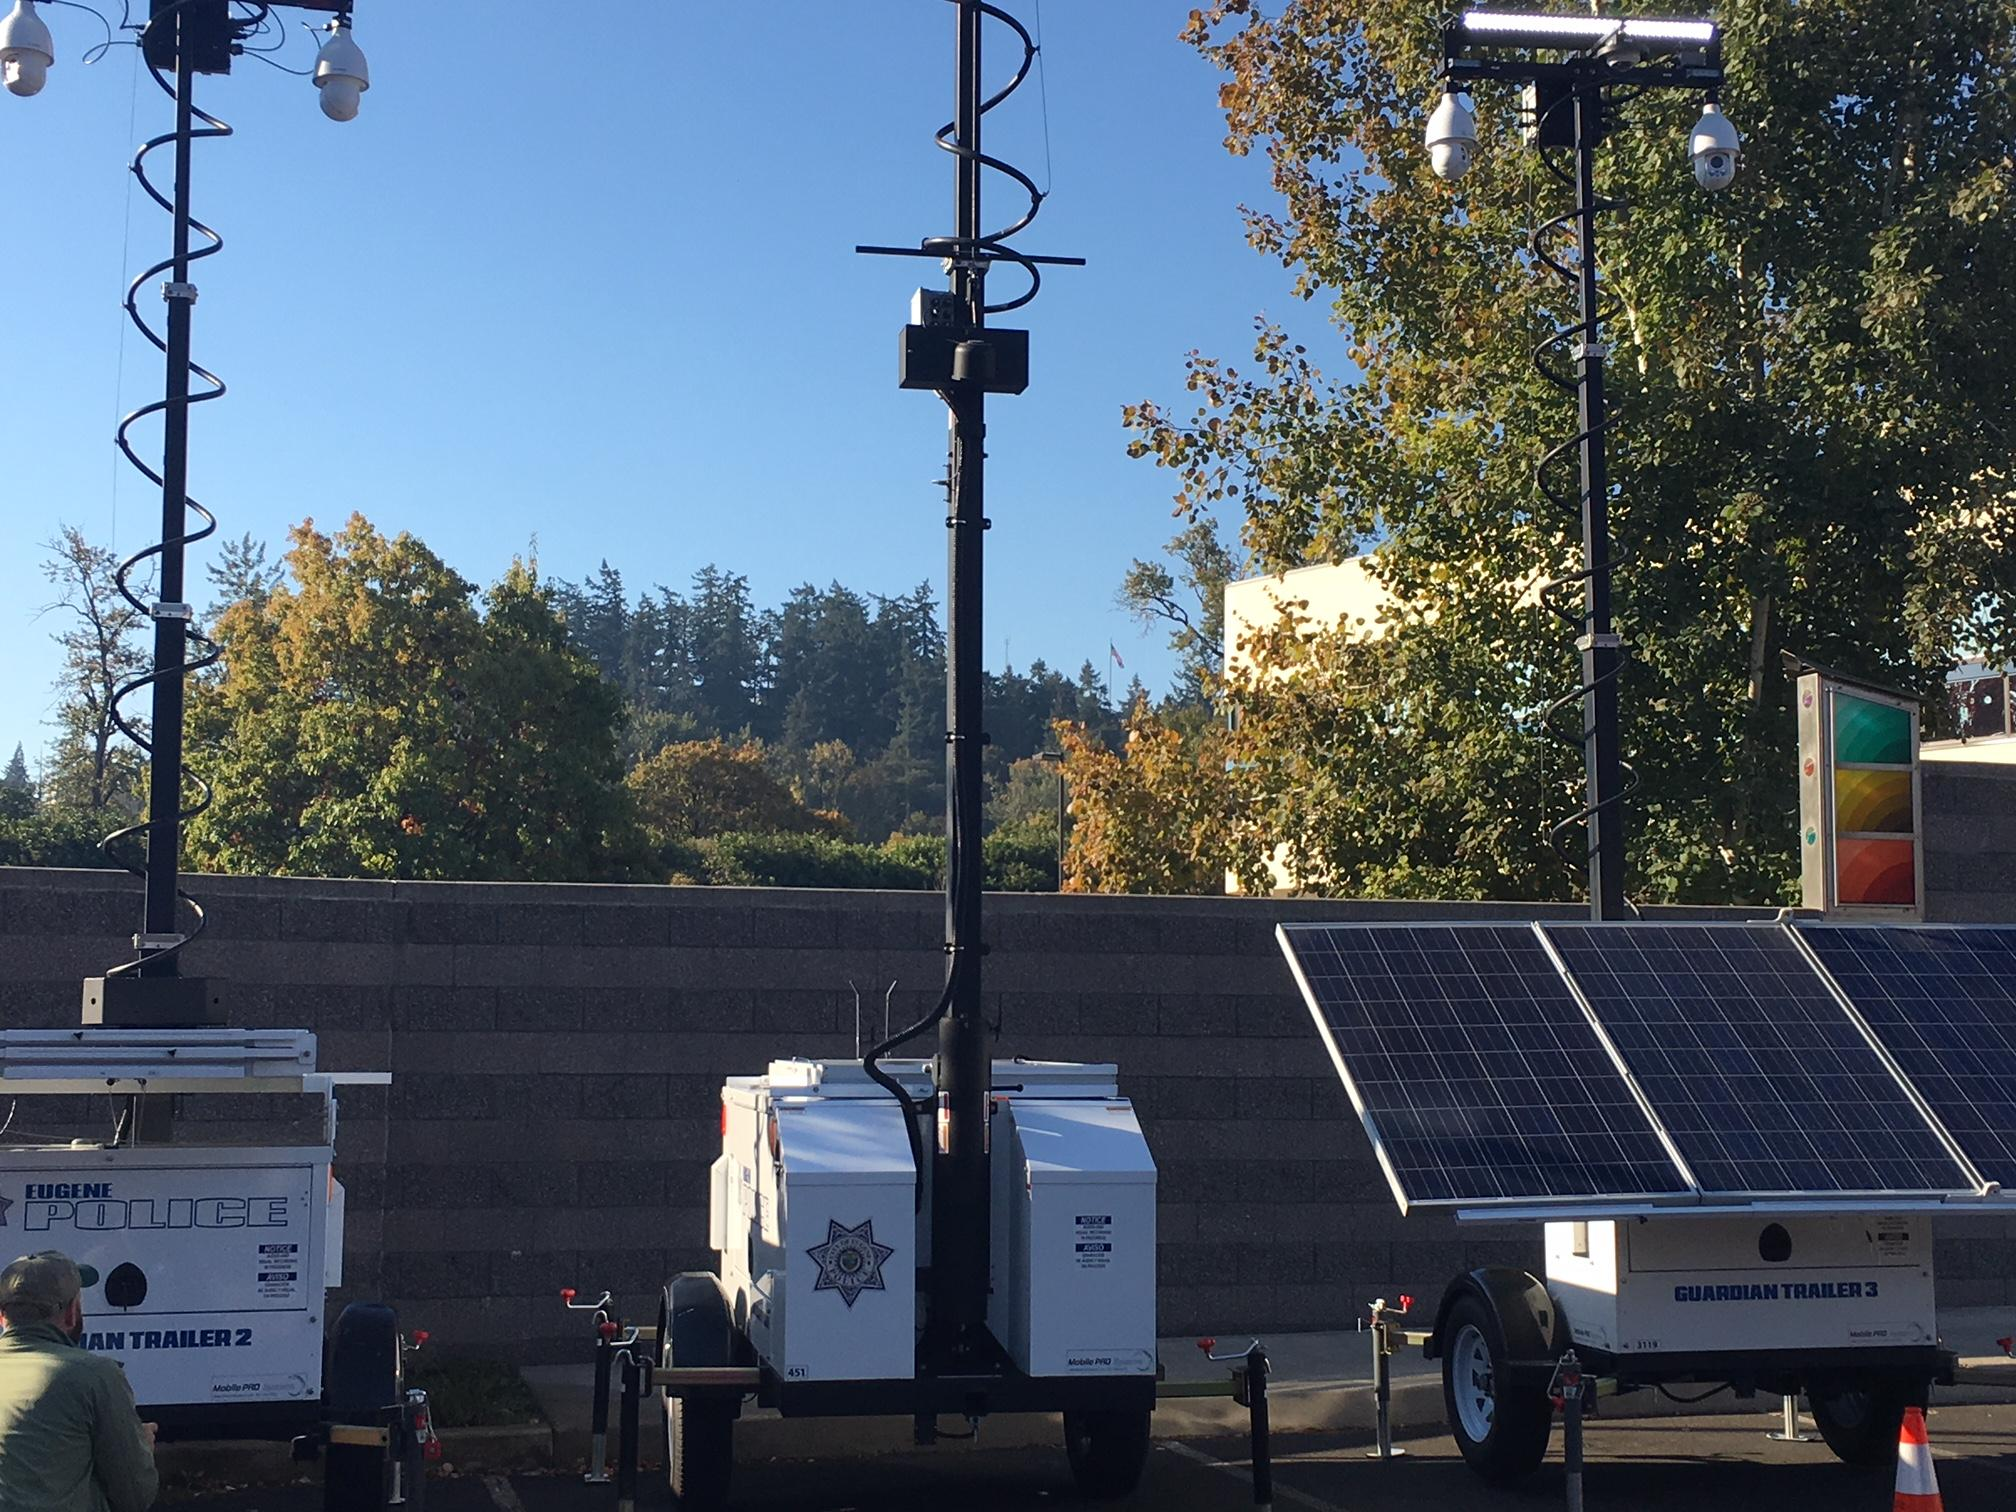 New 'guardian trailers' placed around downtown Eugene to help with public safety